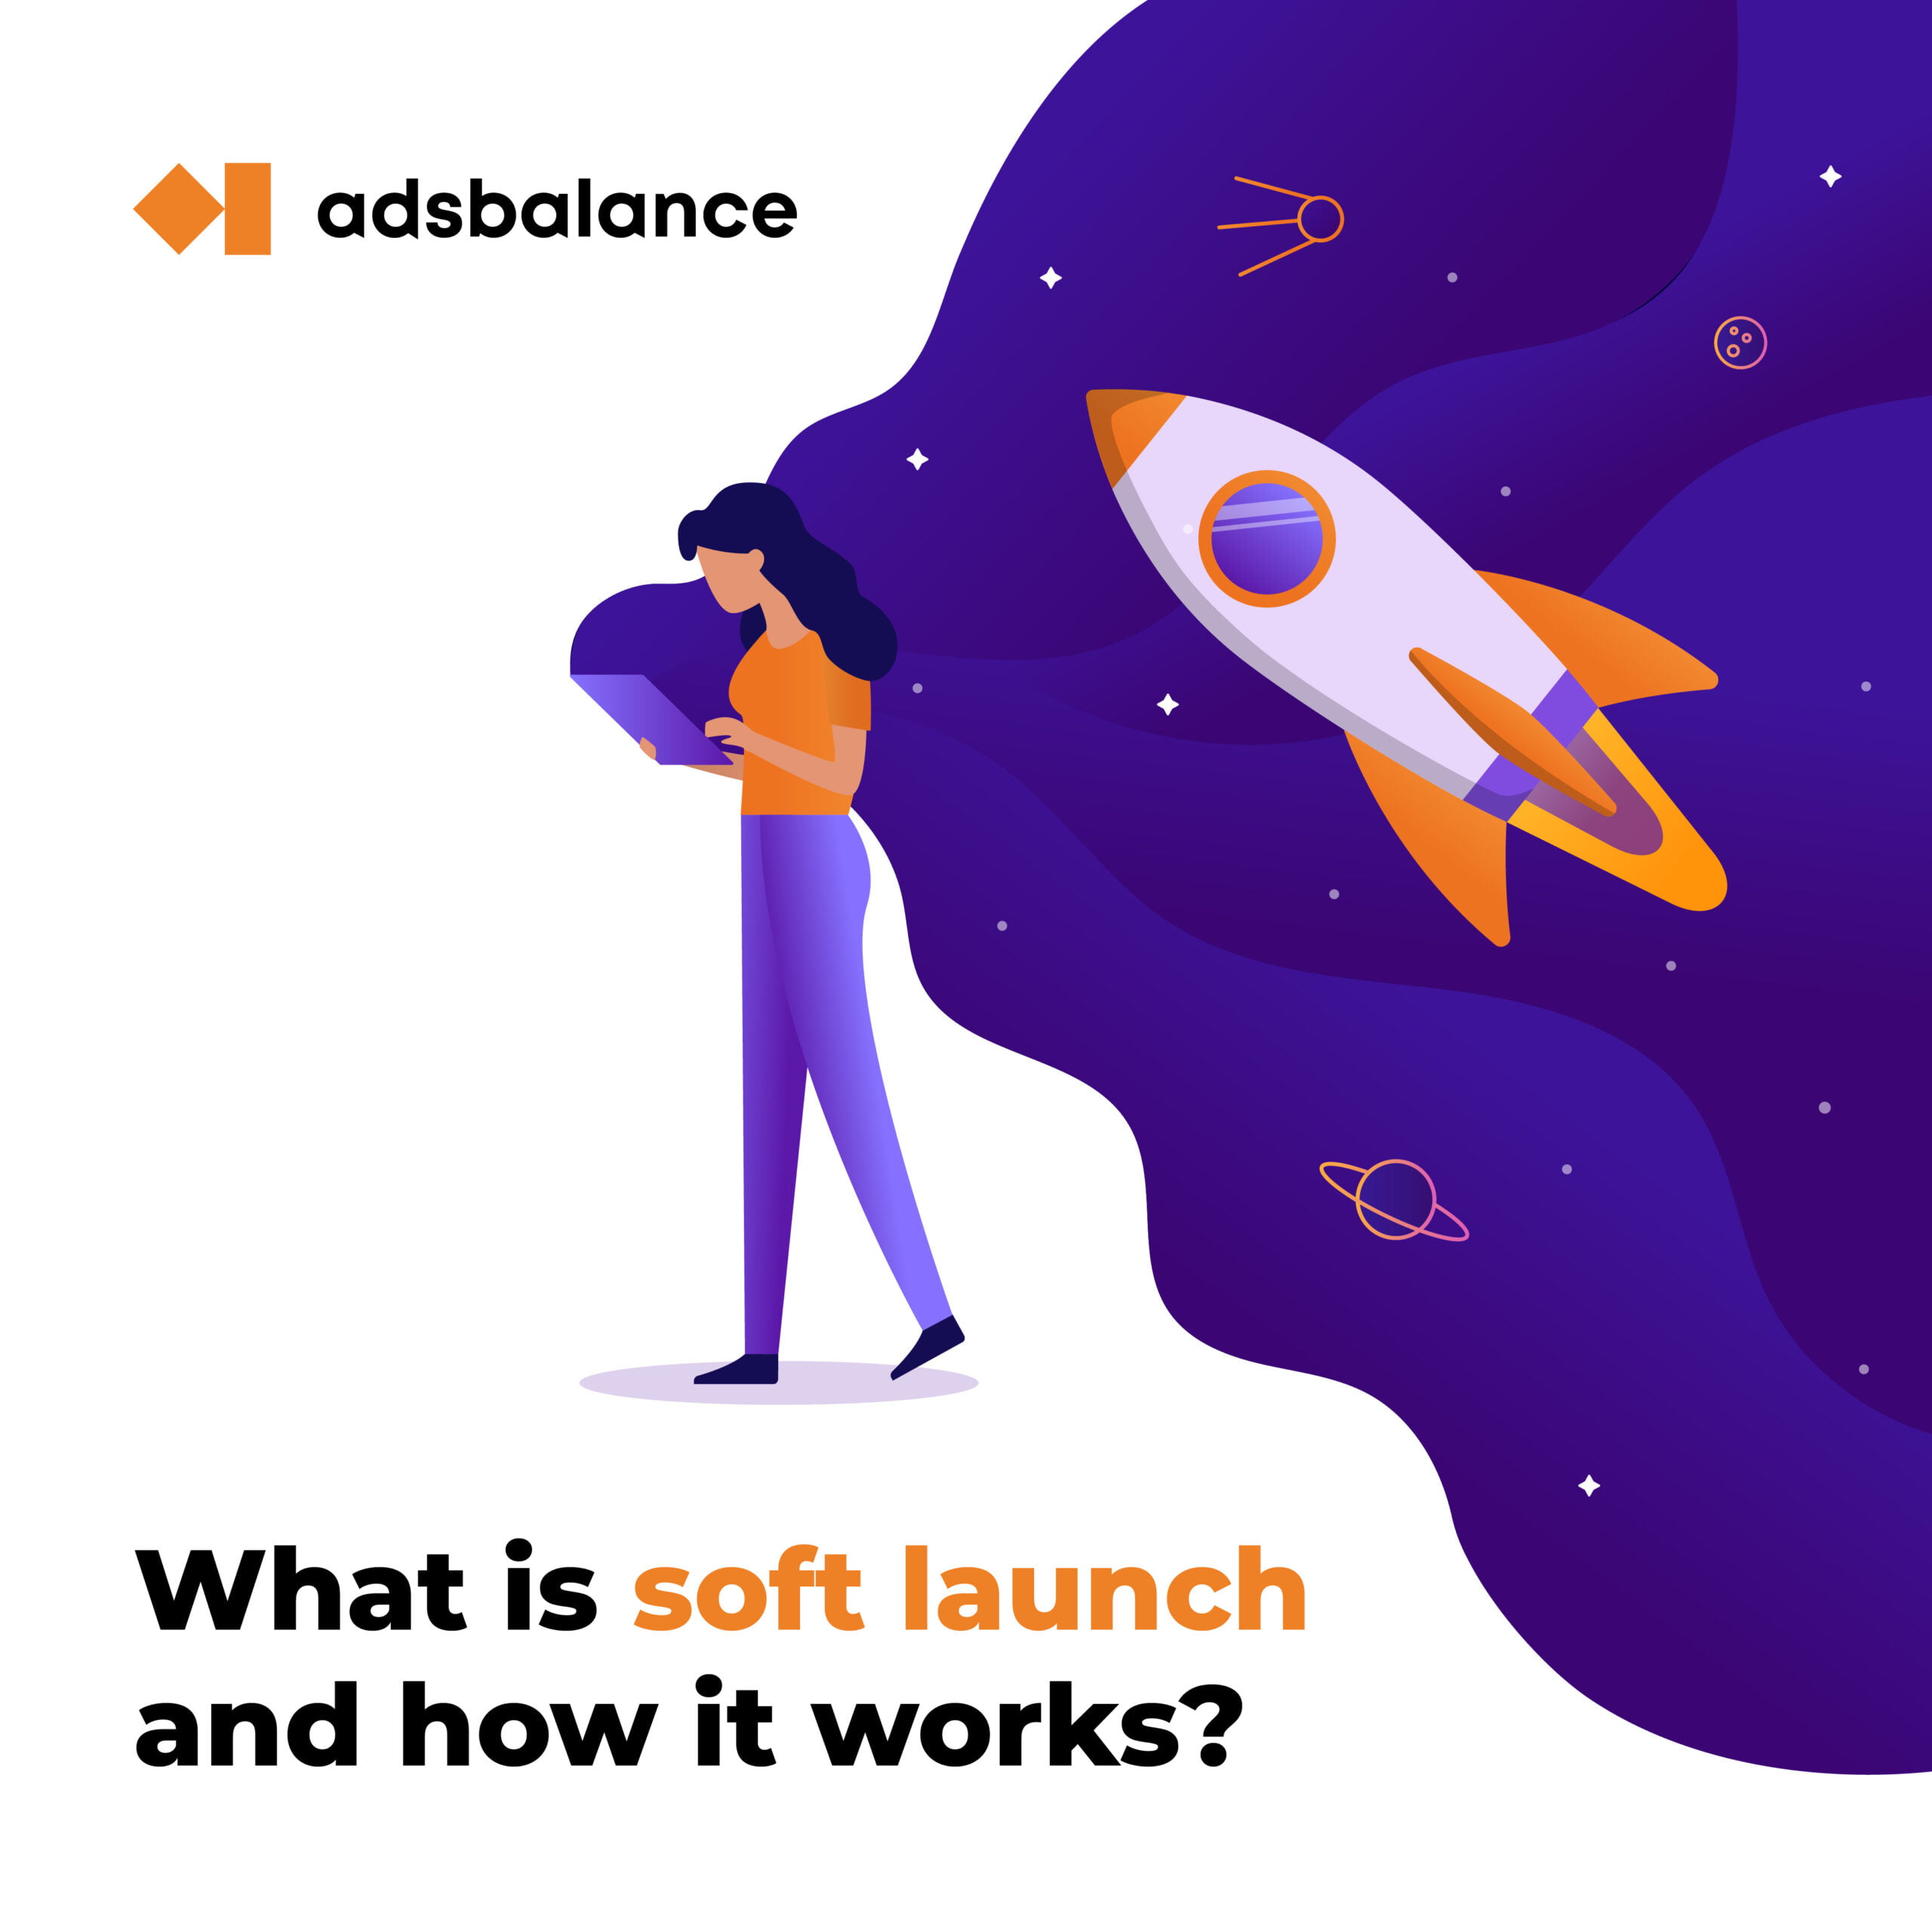 What is soft launch and why do you need it?